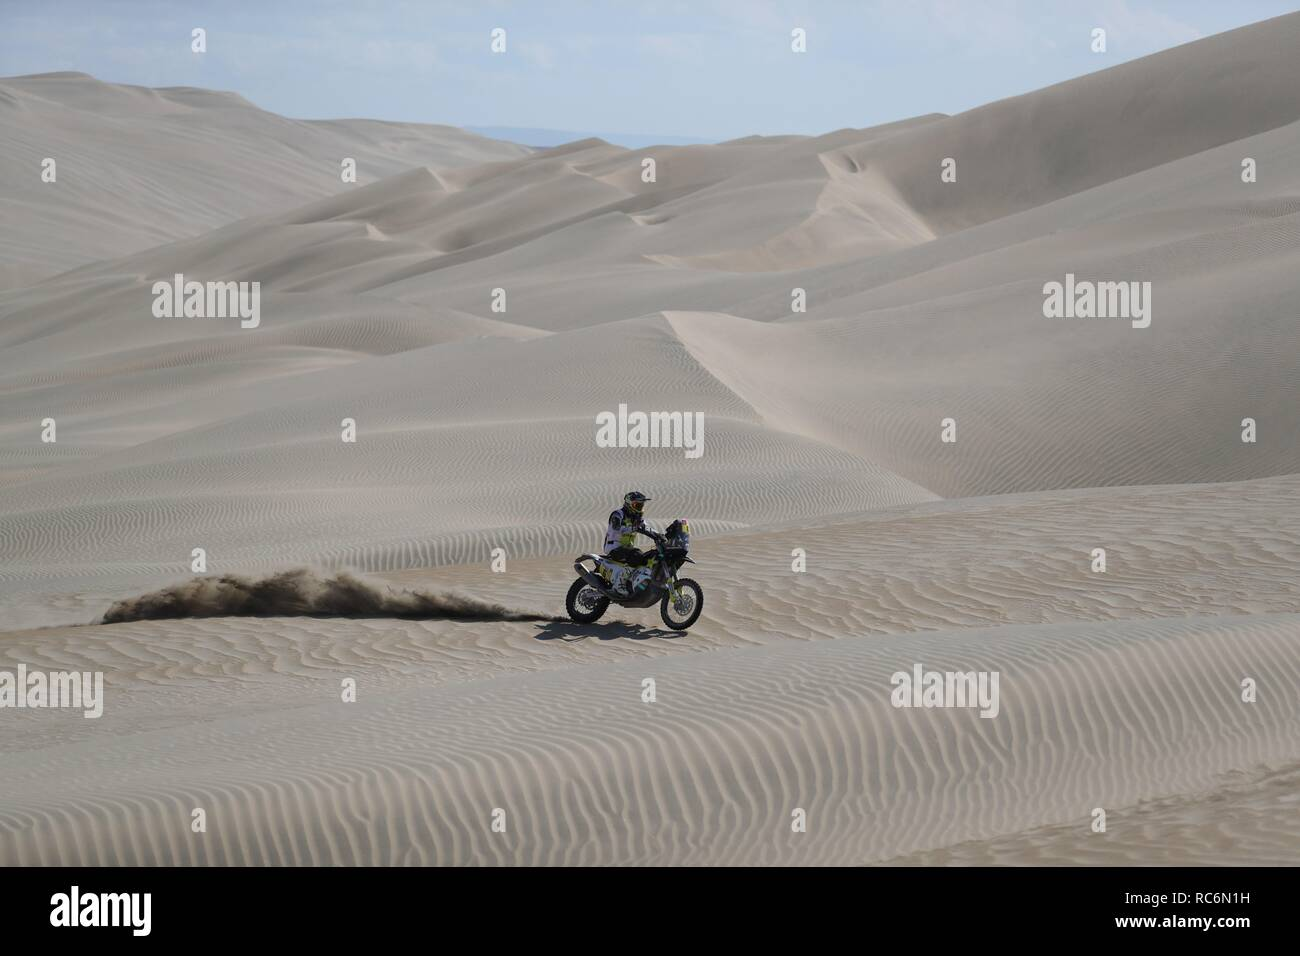 San Juan De Marcona, Peru. 14th Jan, 2019. Chilean Pablo Quintanilla rides his Husqvarna during the seventh stage of the Rally Dakar 2019, with starting and finish line in San Juan de Marcona, Peru, 14 January 2019. Credit: Ernesto Arias/EFE/Alamy Live News - Stock Image